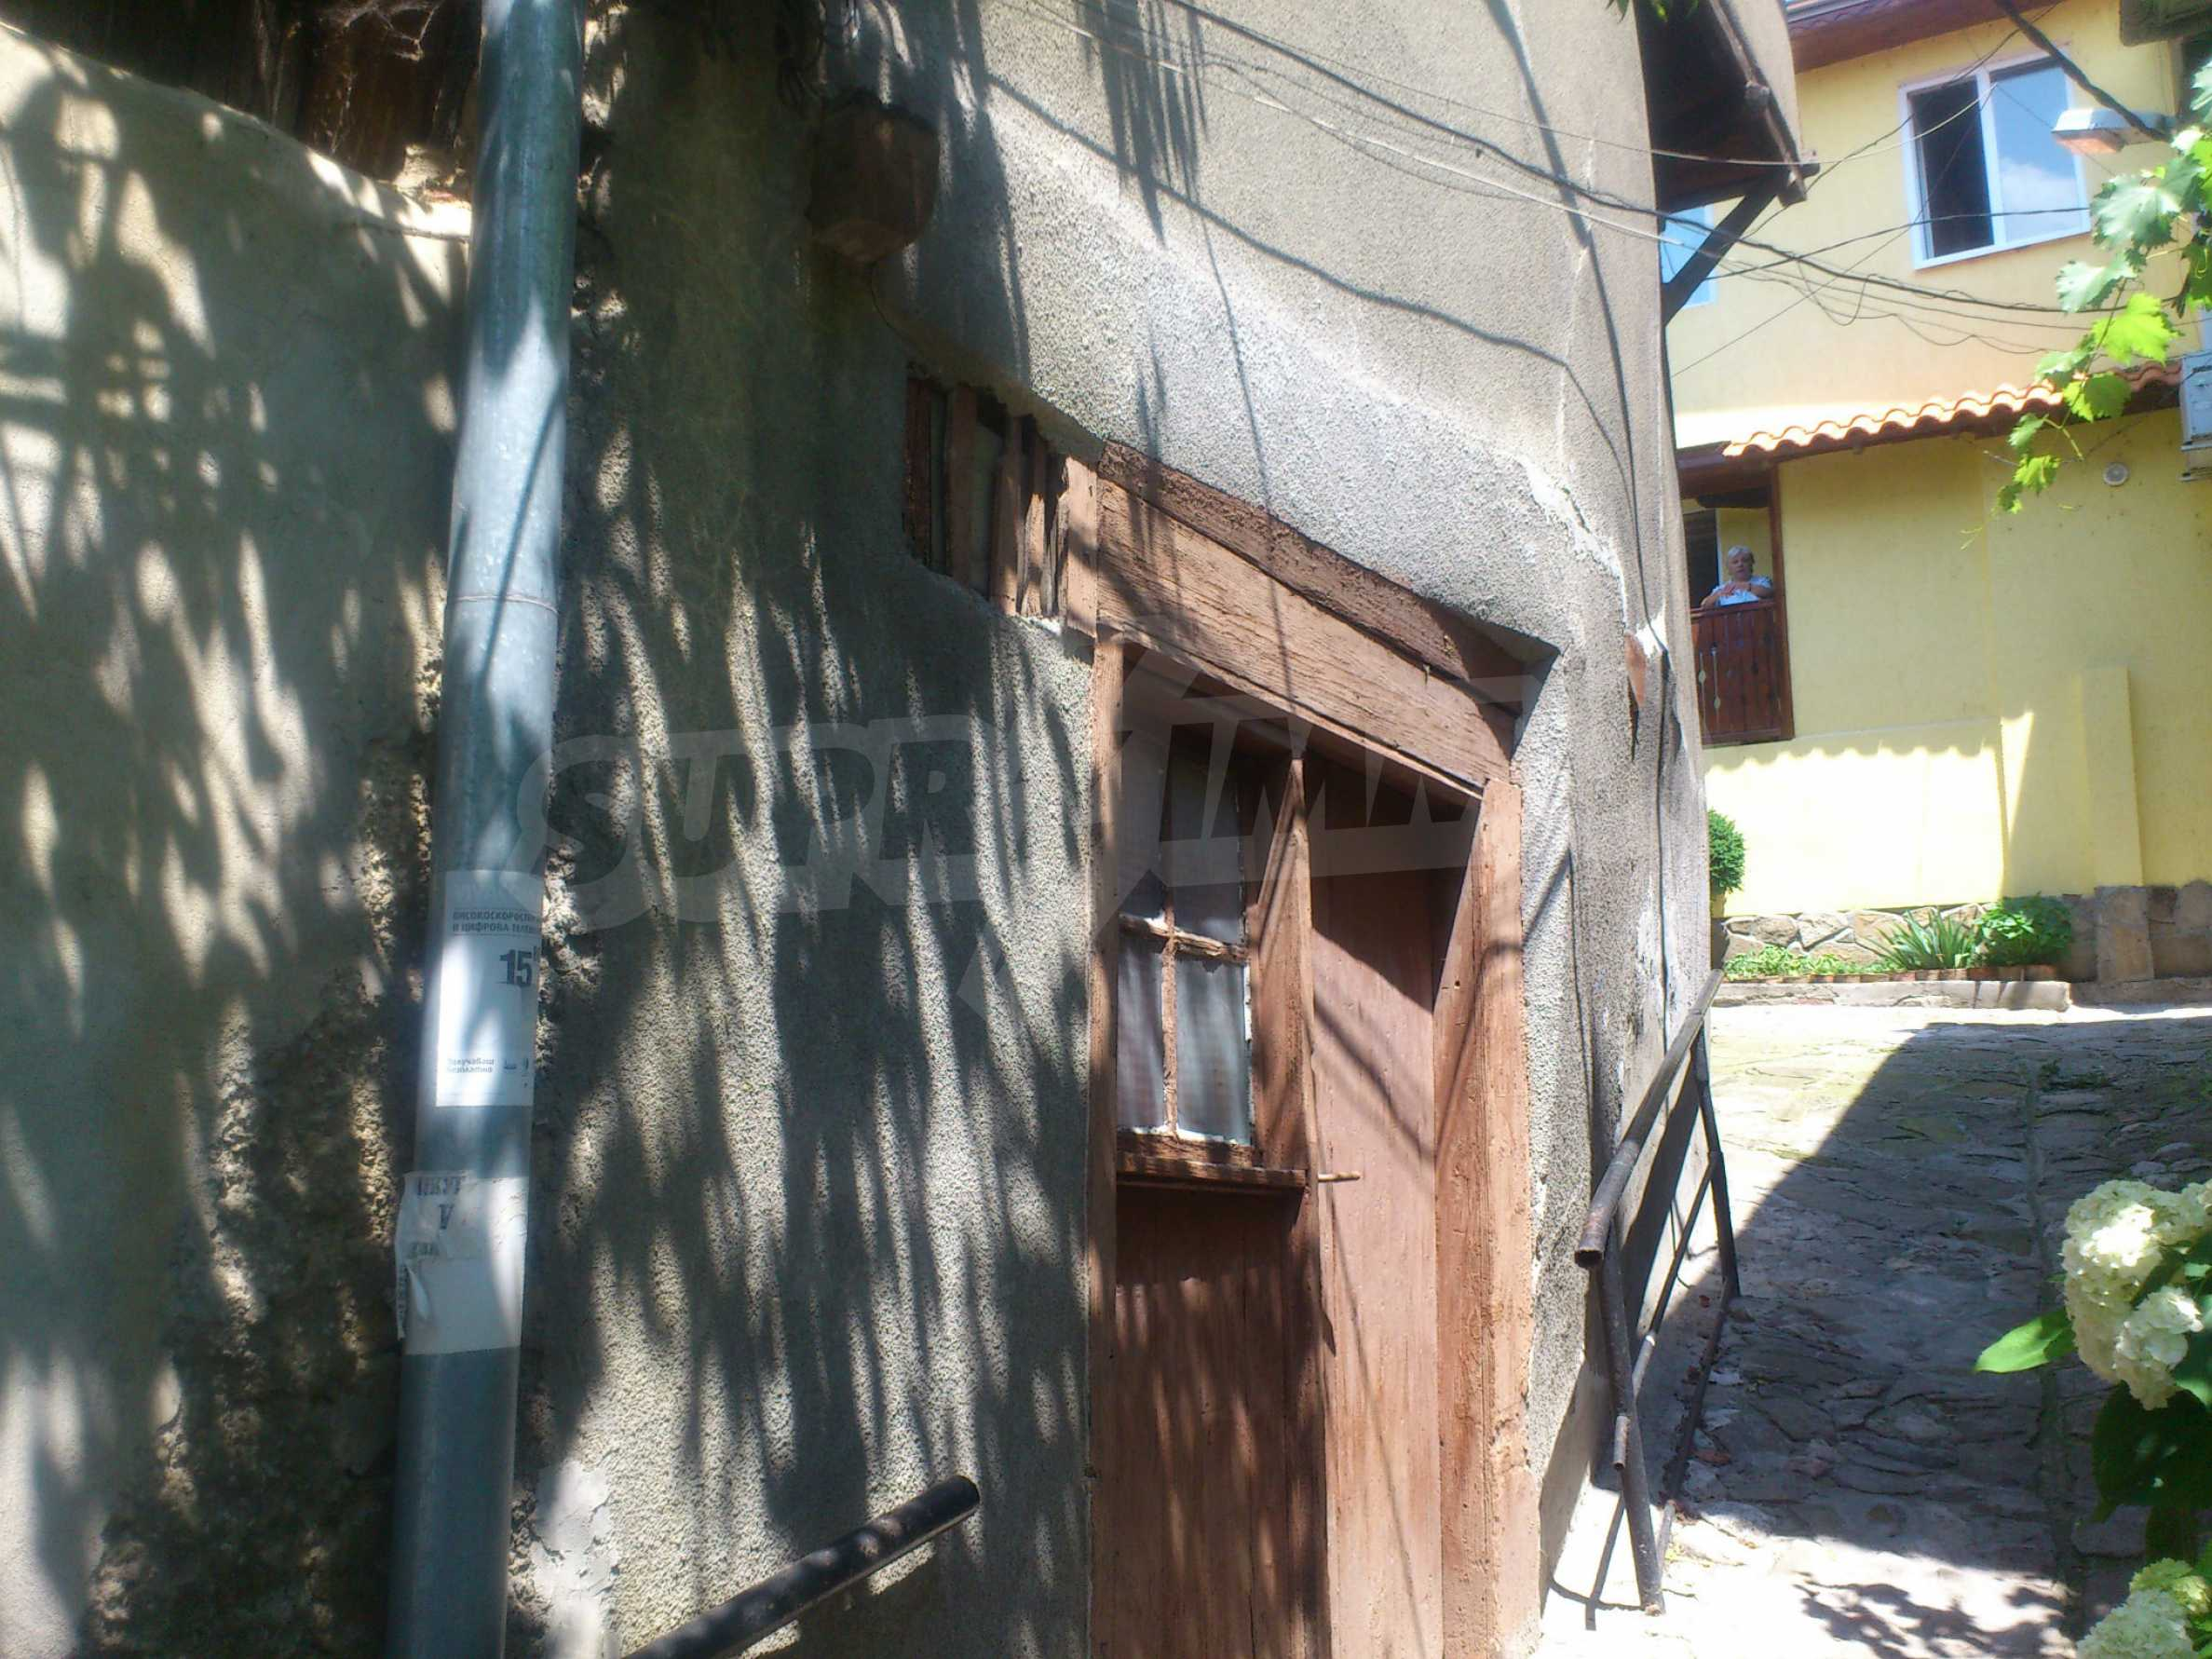 Traditional, spacious house located in the old part of Veliko Tarnovo 37